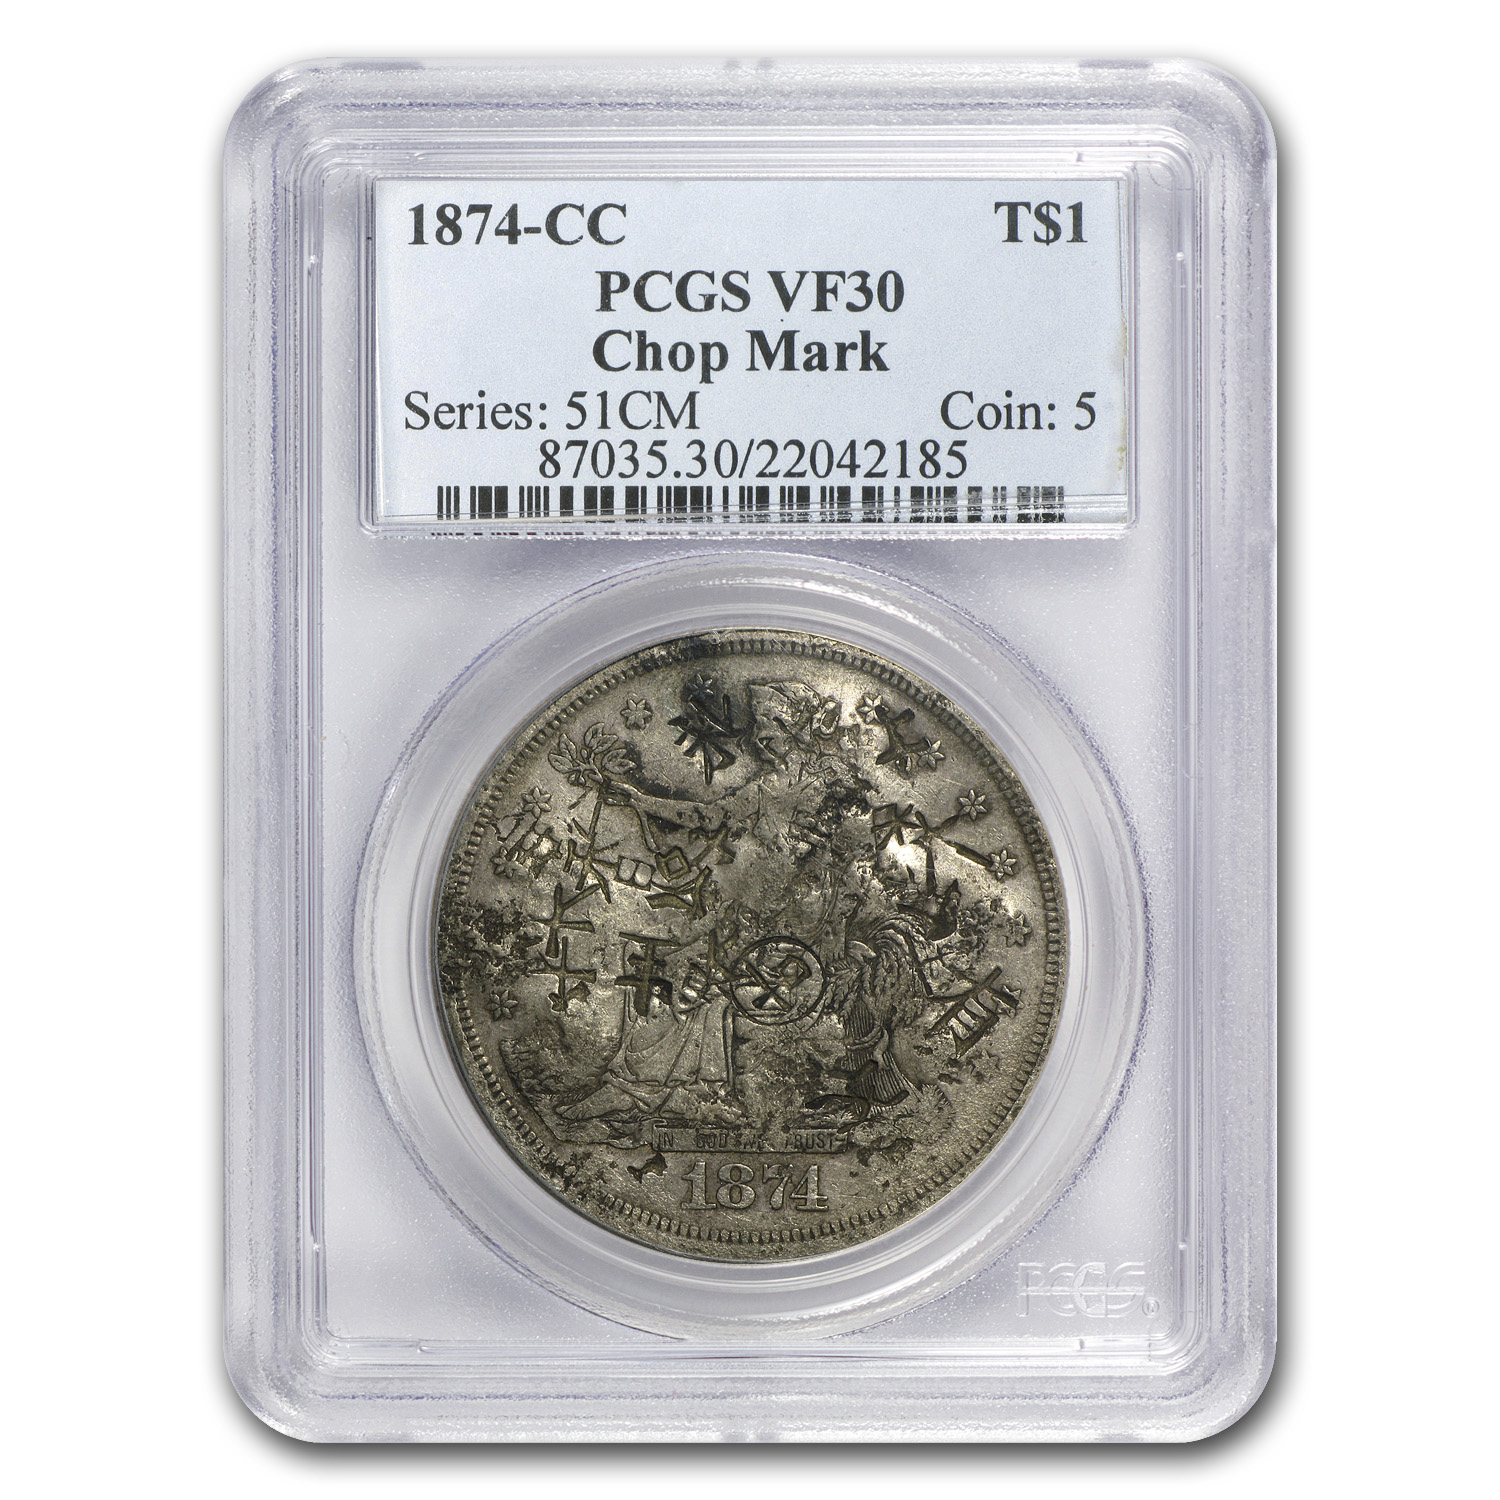 1874-CC Trade Dollar VF-30 PCGS (Chopmarks)